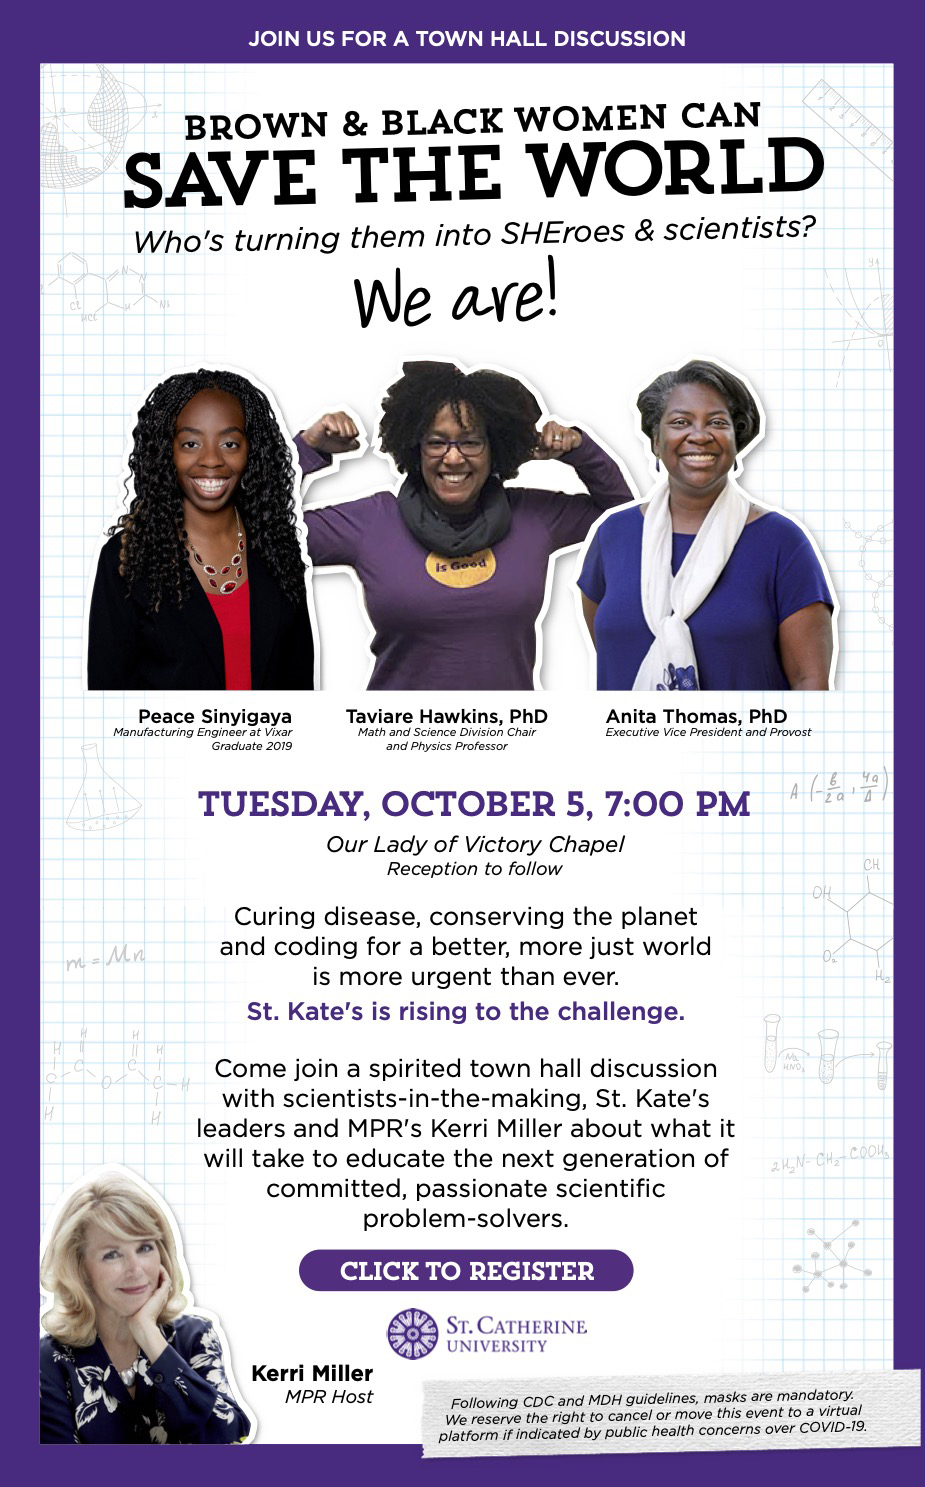 Join us for a town hall discussion 'Brown and Black Women Can Save the World', Tuesday, October 5, 7:00 pm Our Lady of Victory Chapel. Reception to follow. Image includes pictures of the speakers - Peace Sinyigaya, Taviare Hawkins, PhD, and Anita Thomas, PhD -  as well as the host, Kerri Miller from MPR, in a lower corner. Masks are mandatory. Click image to register.